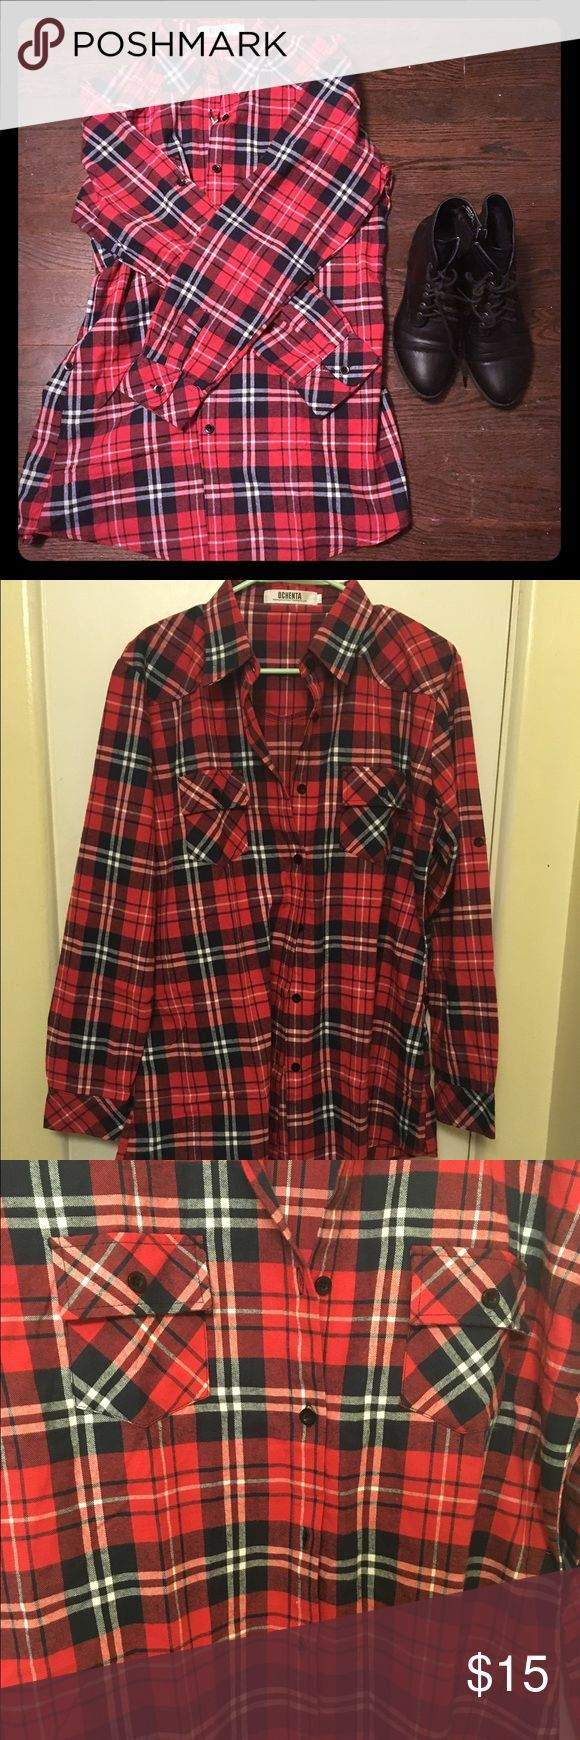 "Oversized Plaid Shirt NWOT. Such a cozy plaid shirt for a cool vintage grunge look!!! Perfect with leggings and black boots!!! 22"" from armpit to armpit and 31"" long. Great for cold weather or as a pajama shirt! (Labeled Forever 21 for exposure). Forever 21 Tops Button Down Shirts"